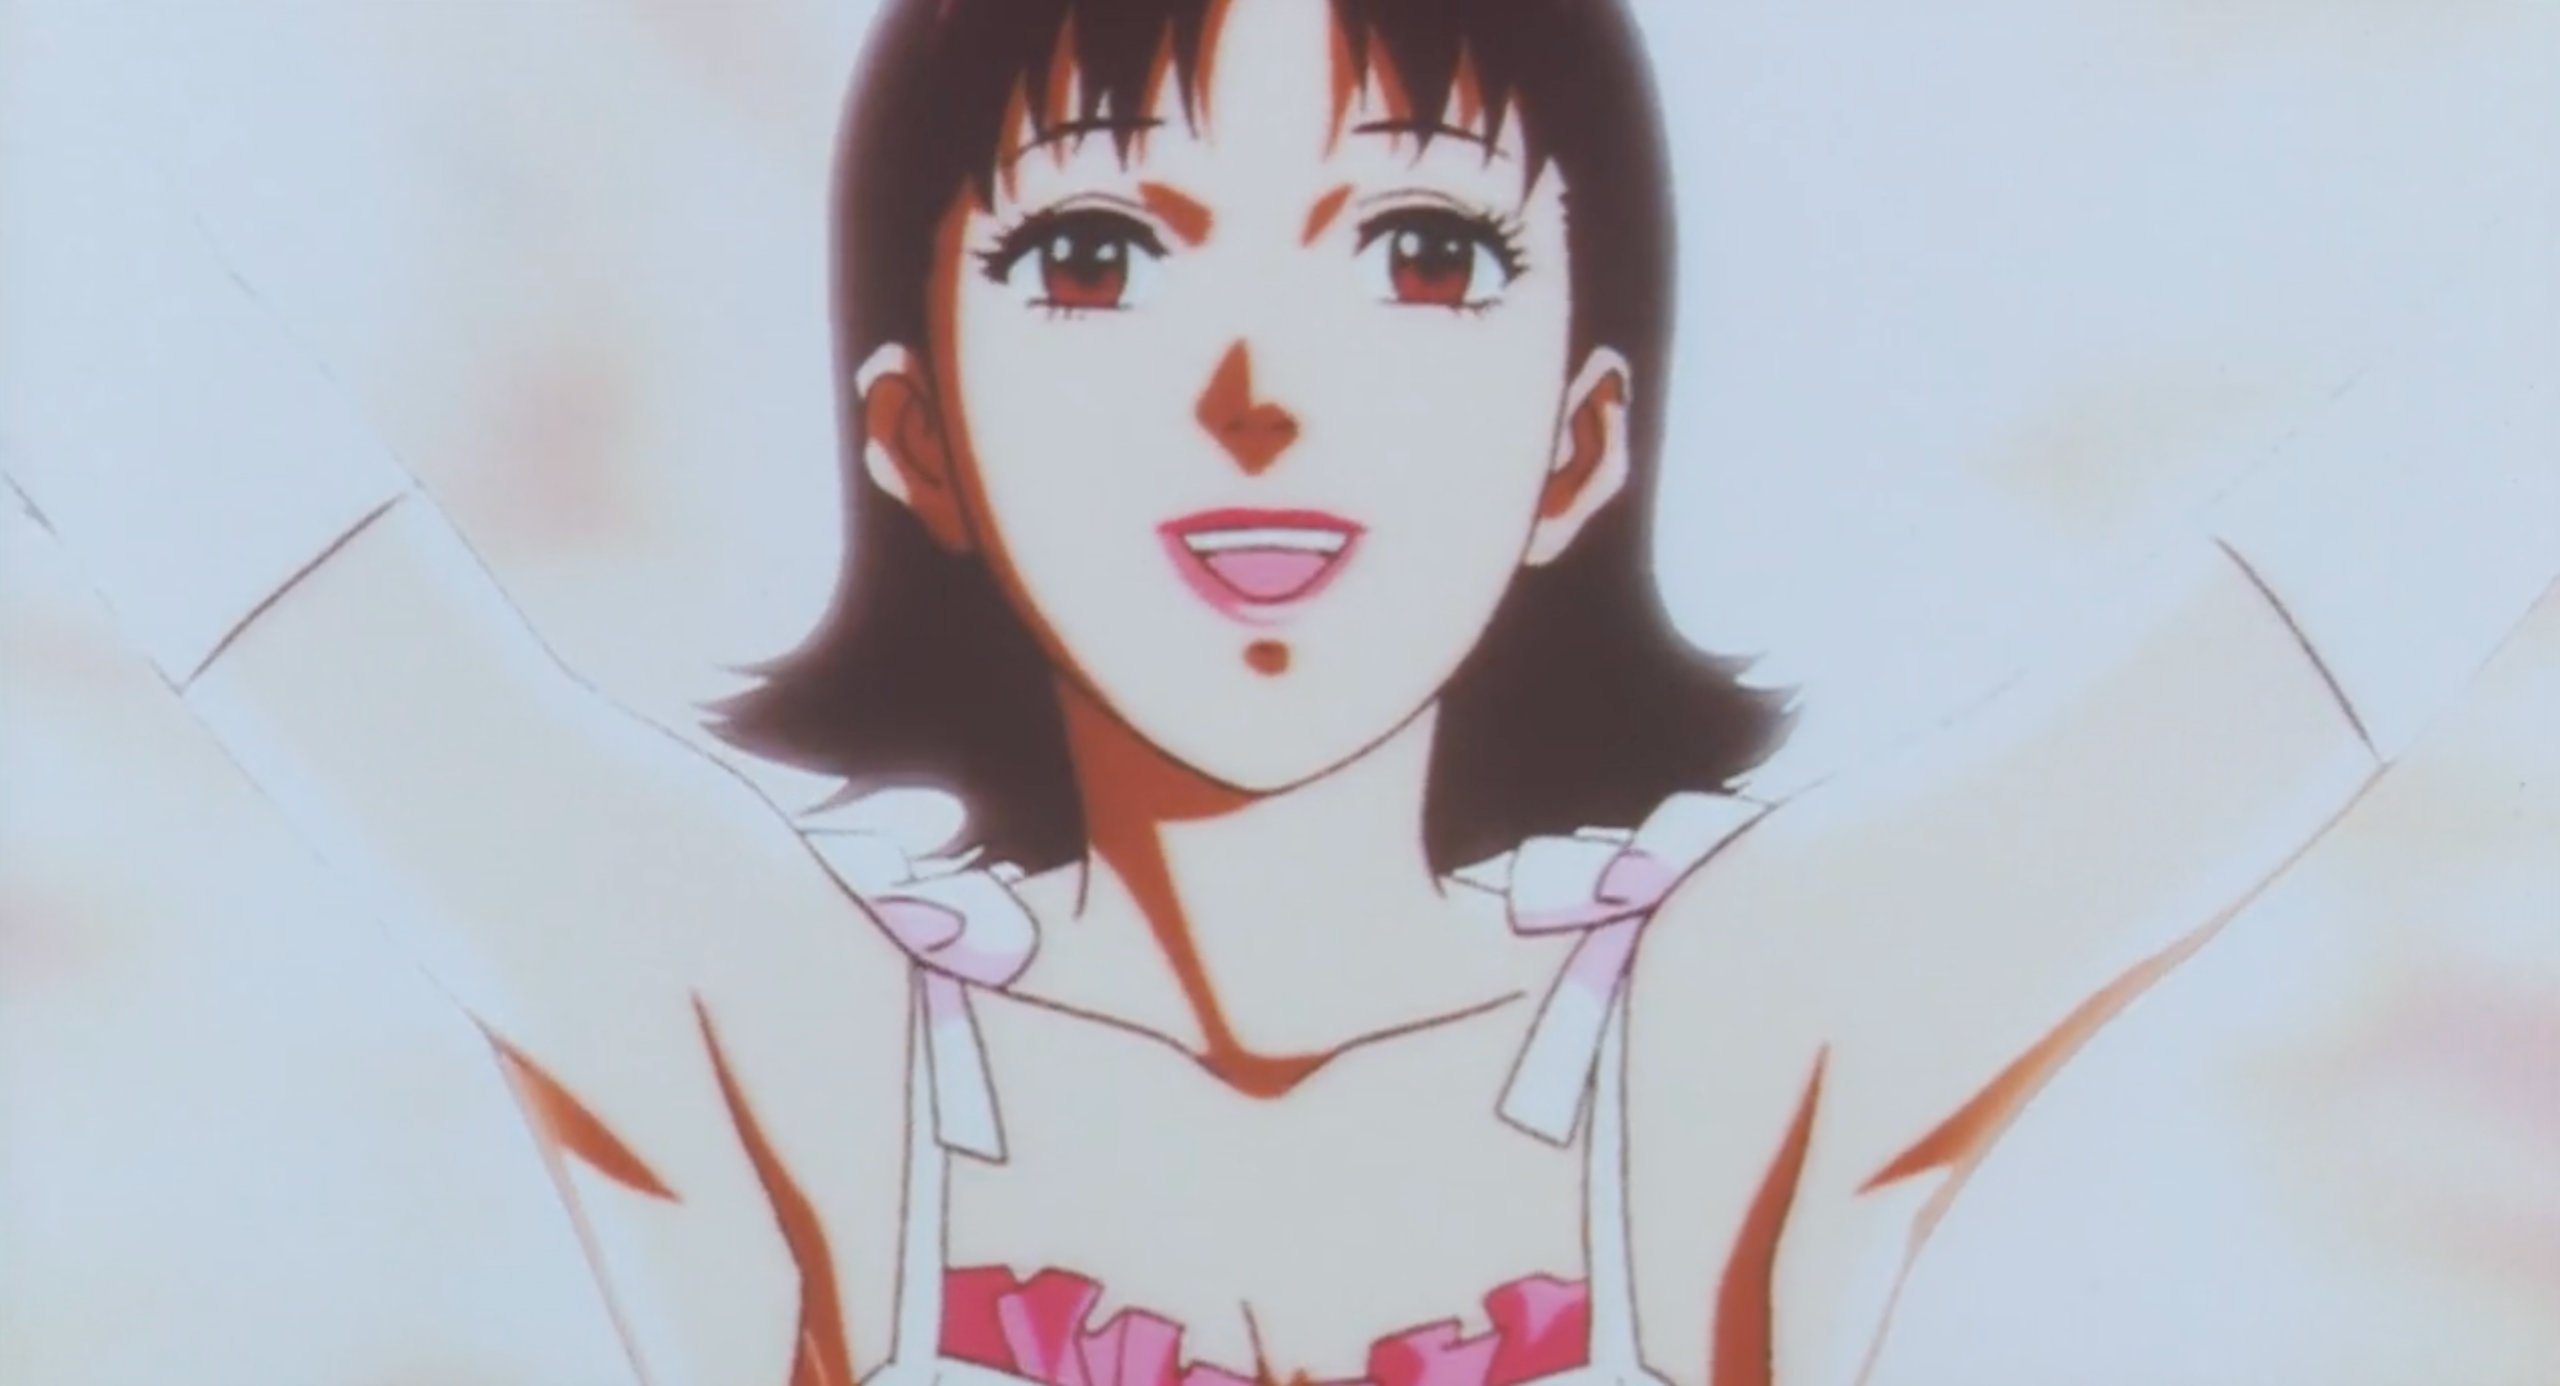 Mima poses for a crowd in Perfect Blue